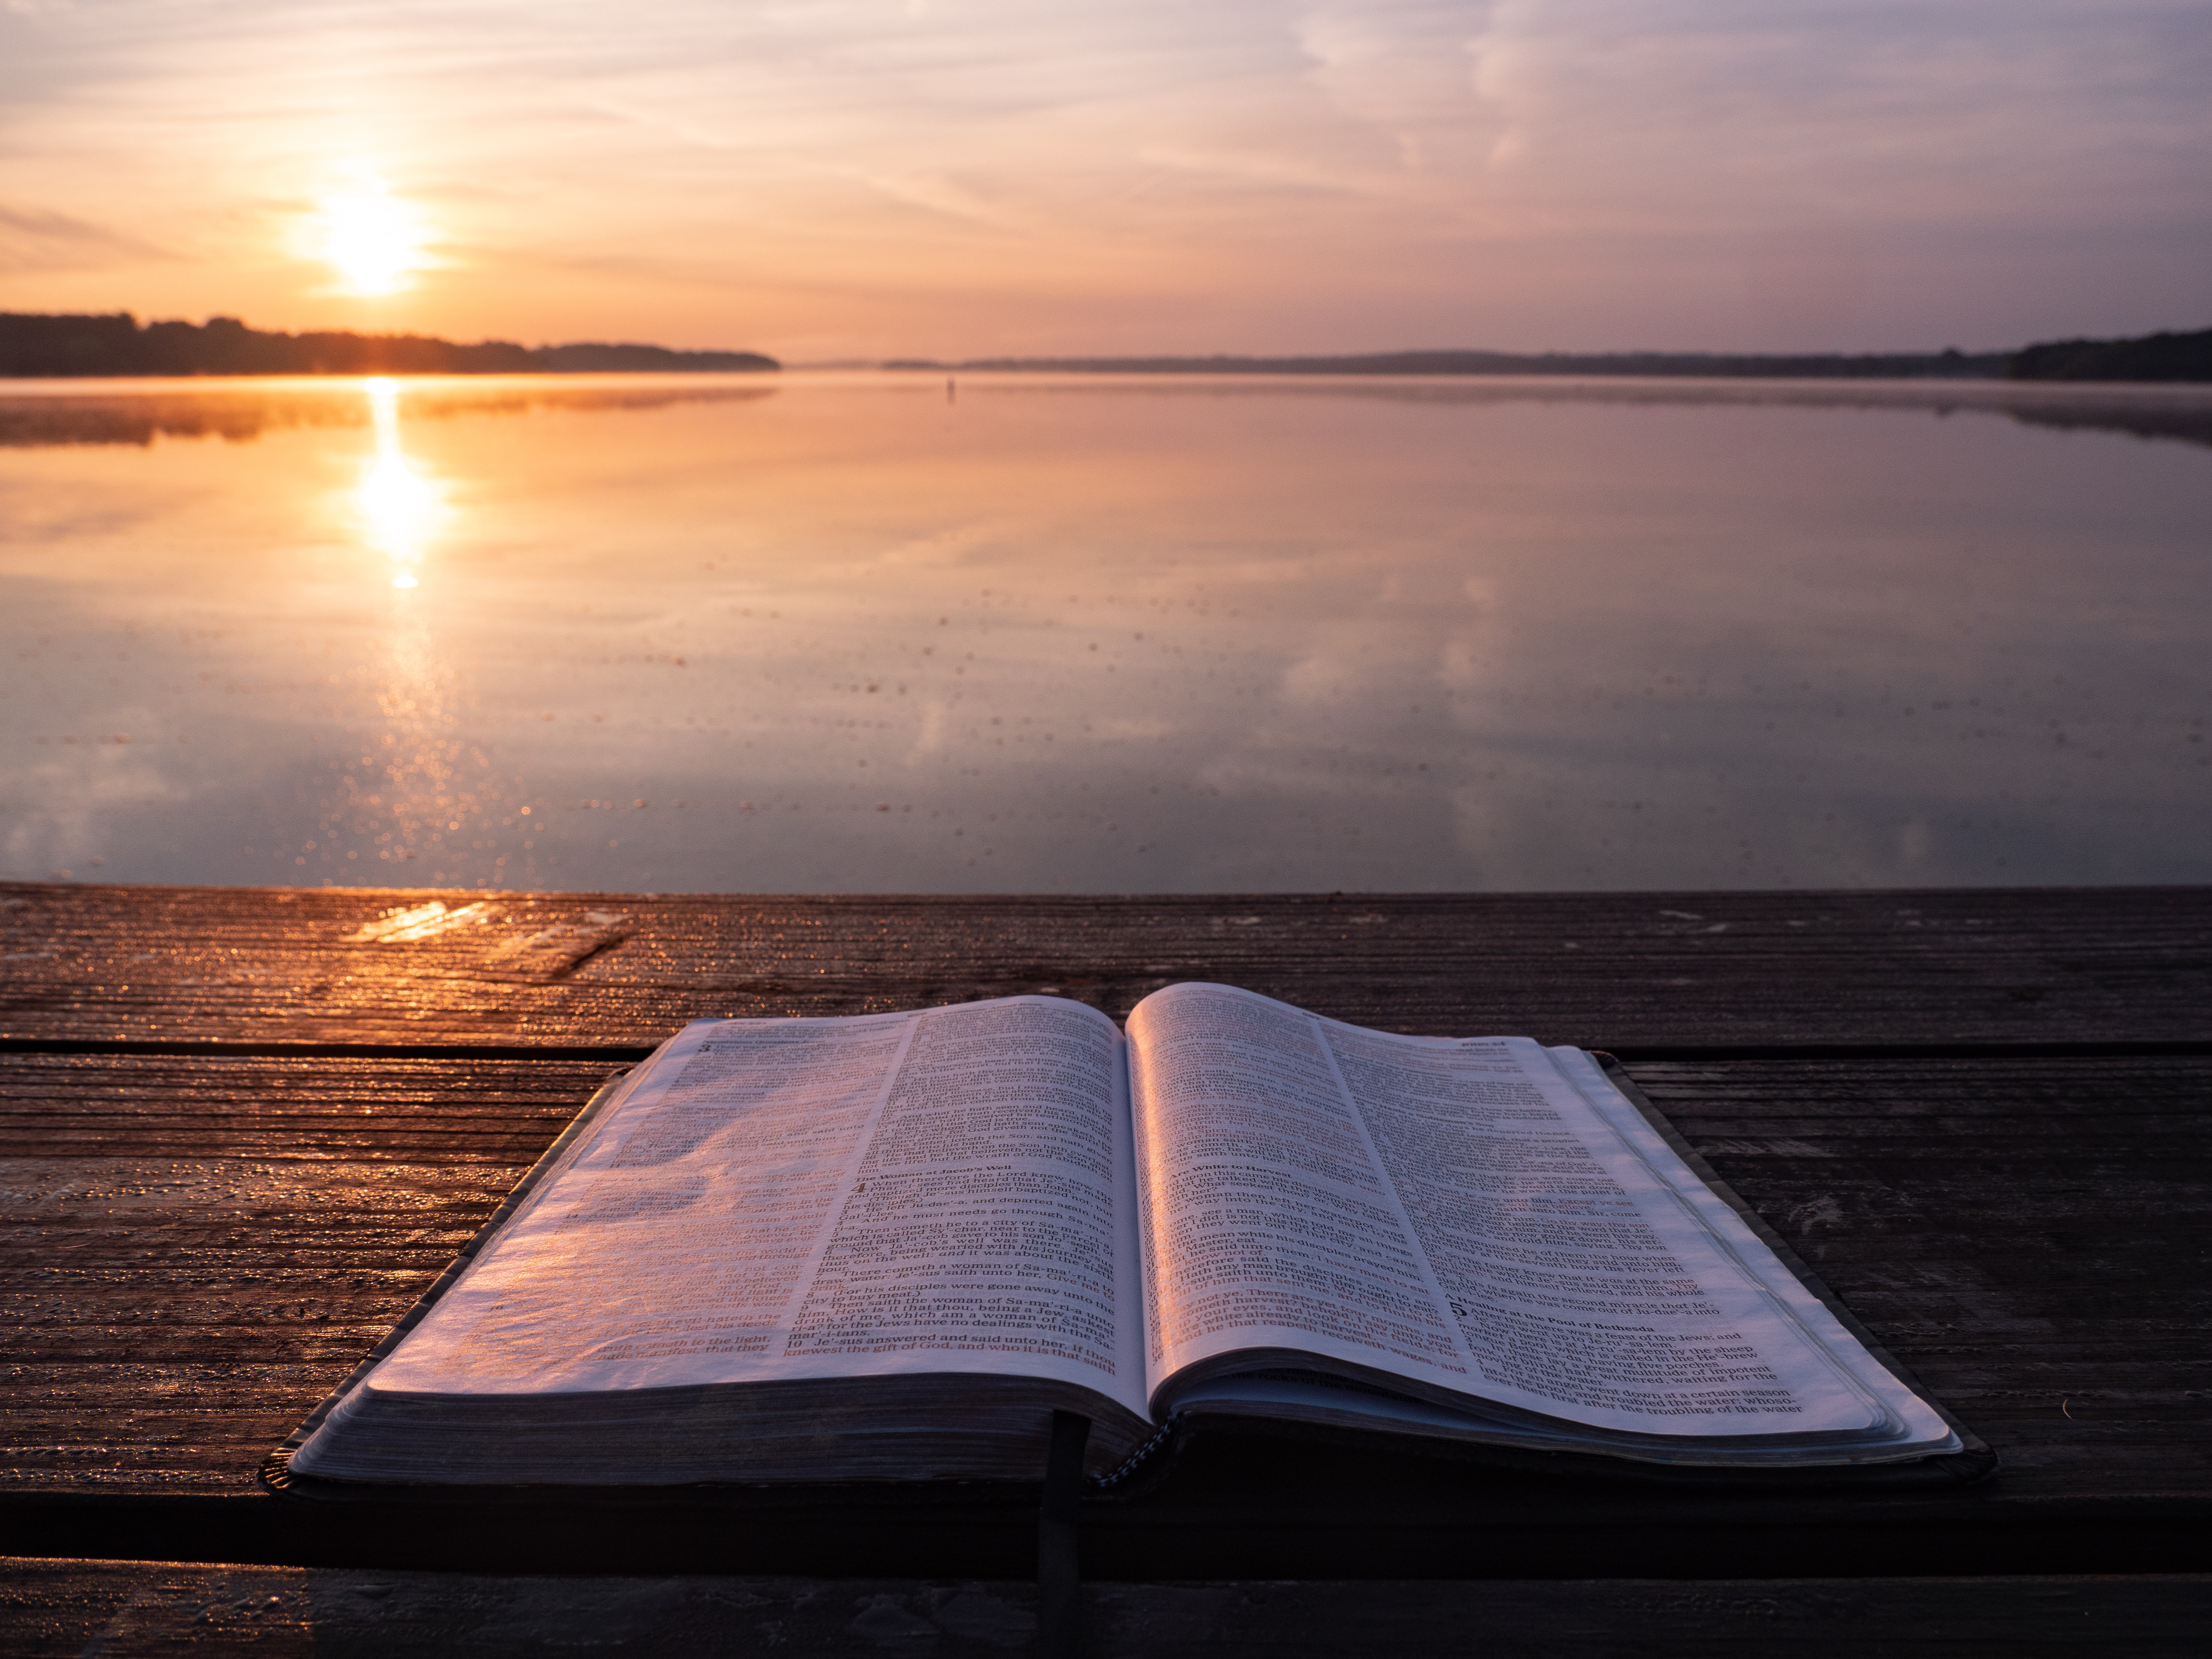 bible open by water